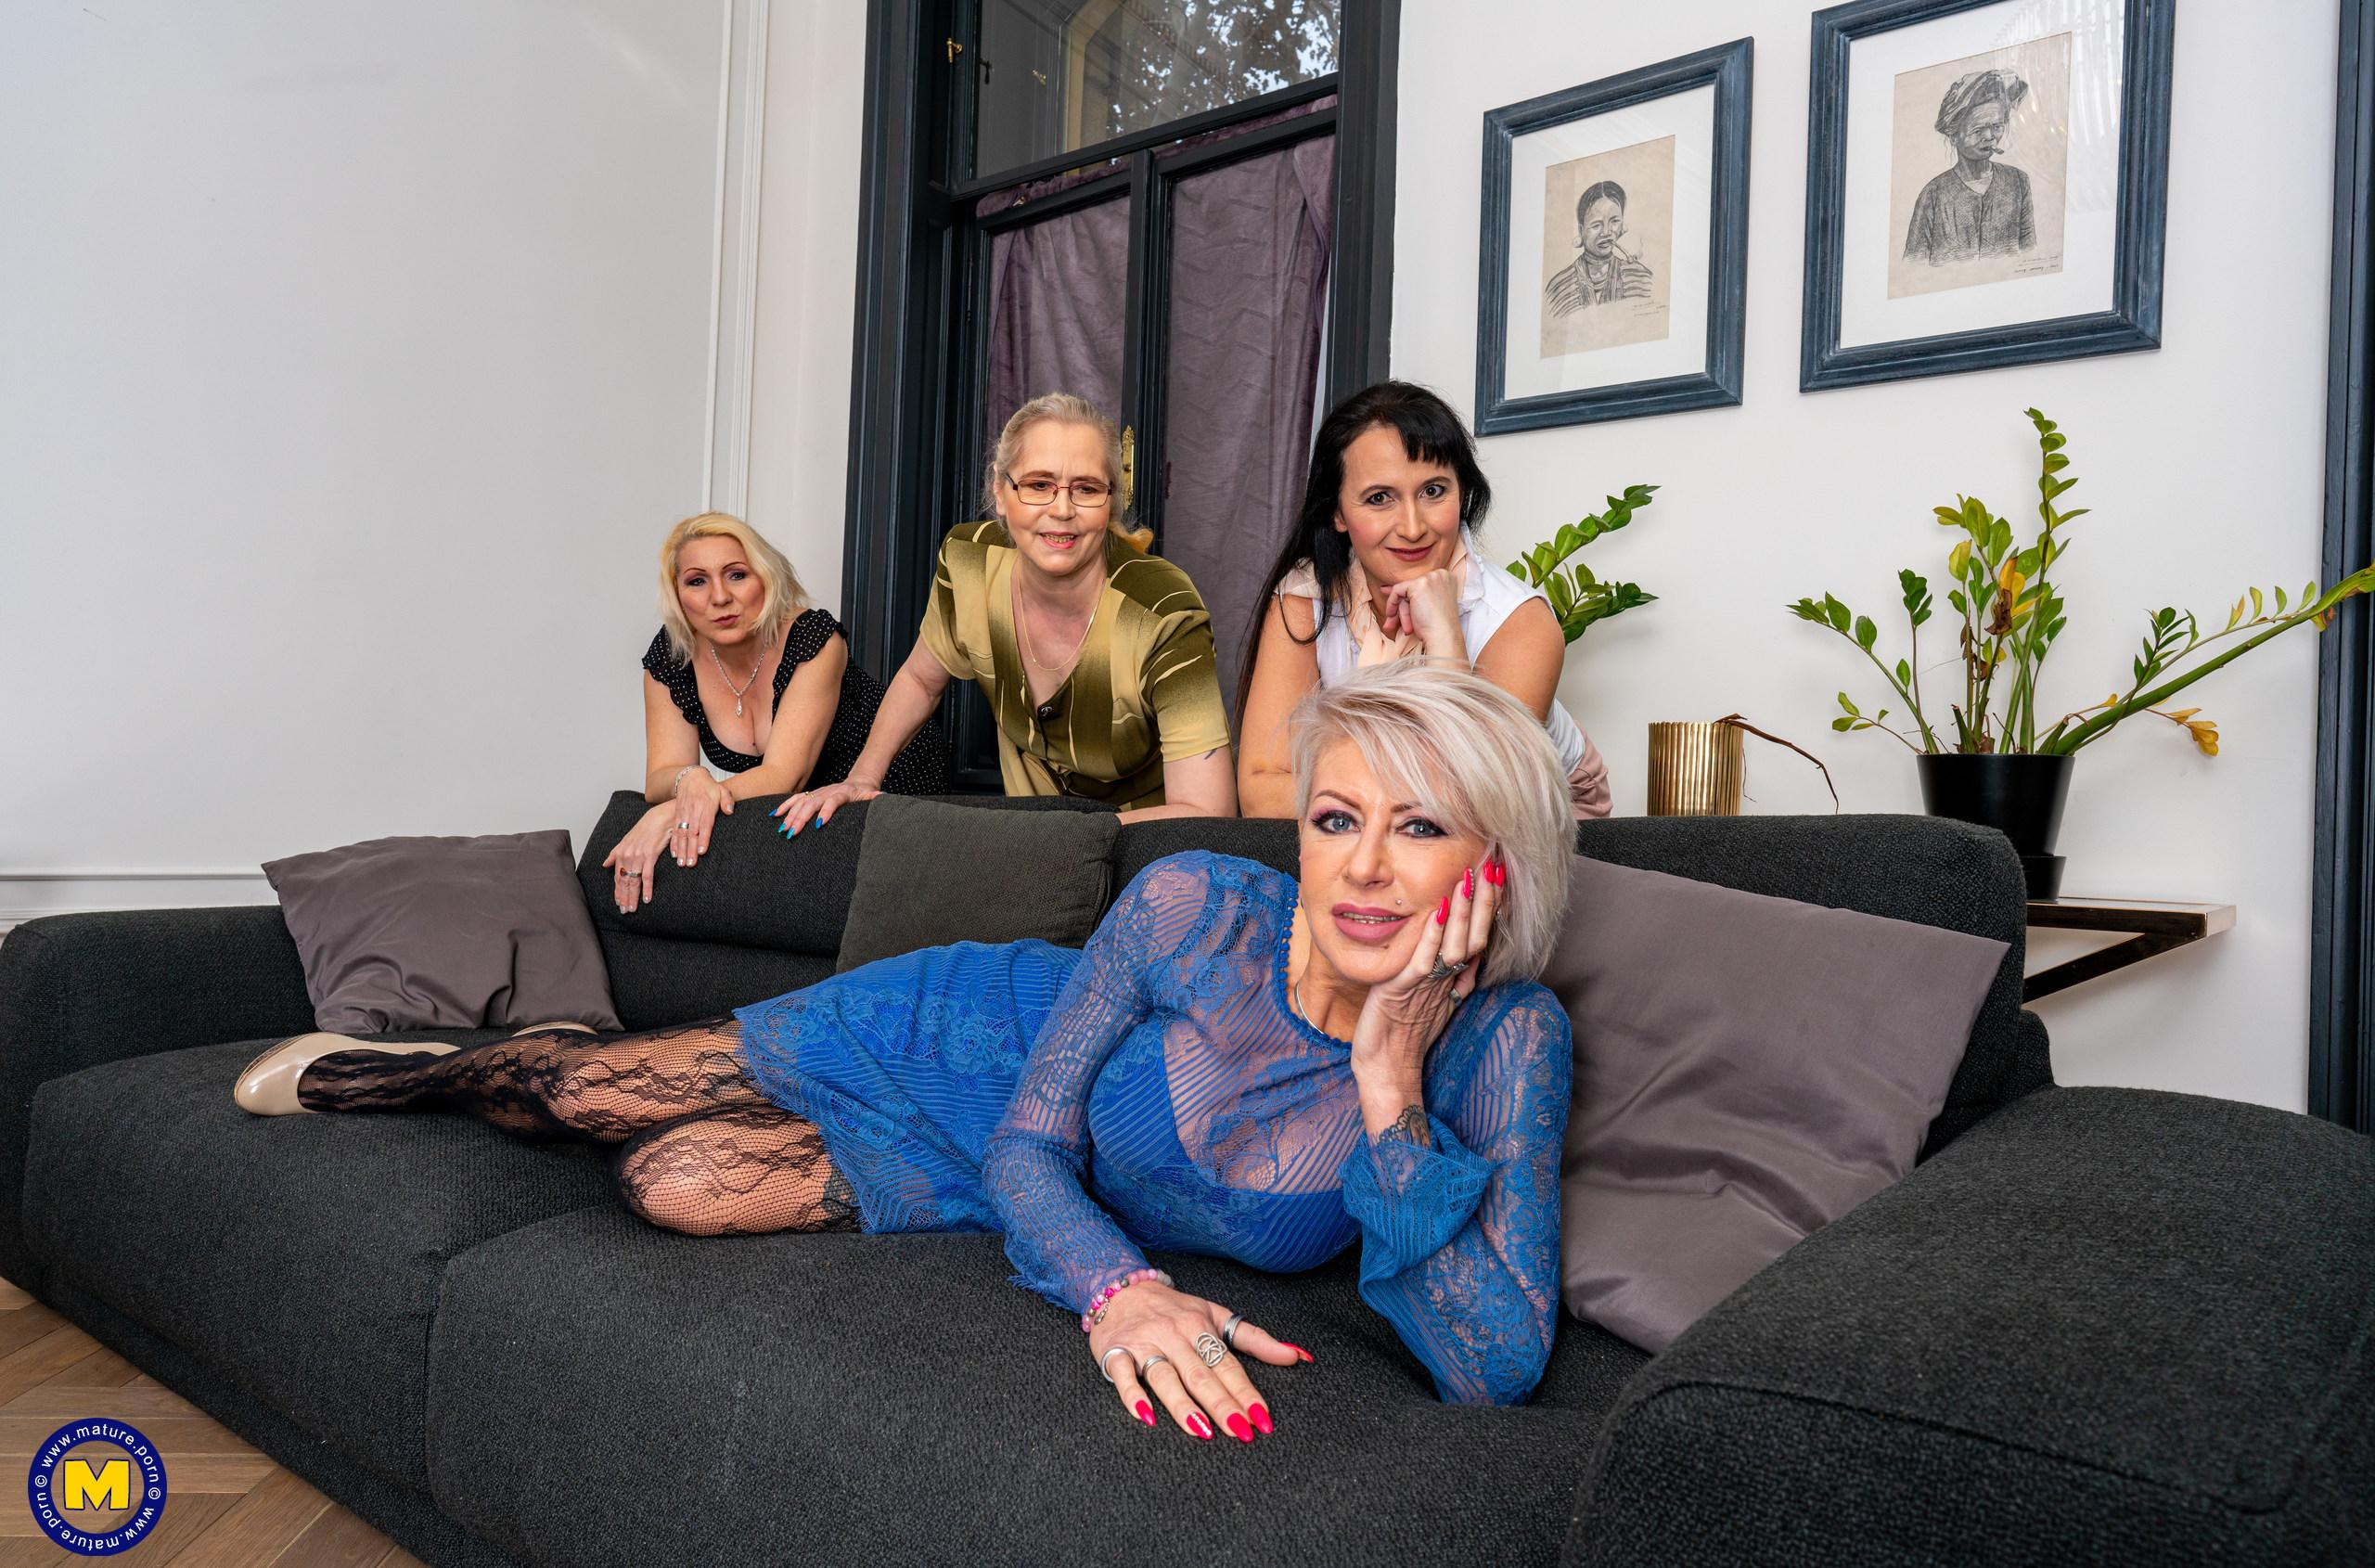 a overcrowded granny gangbang - 4 oldies sharing 2 young dicks picture 2